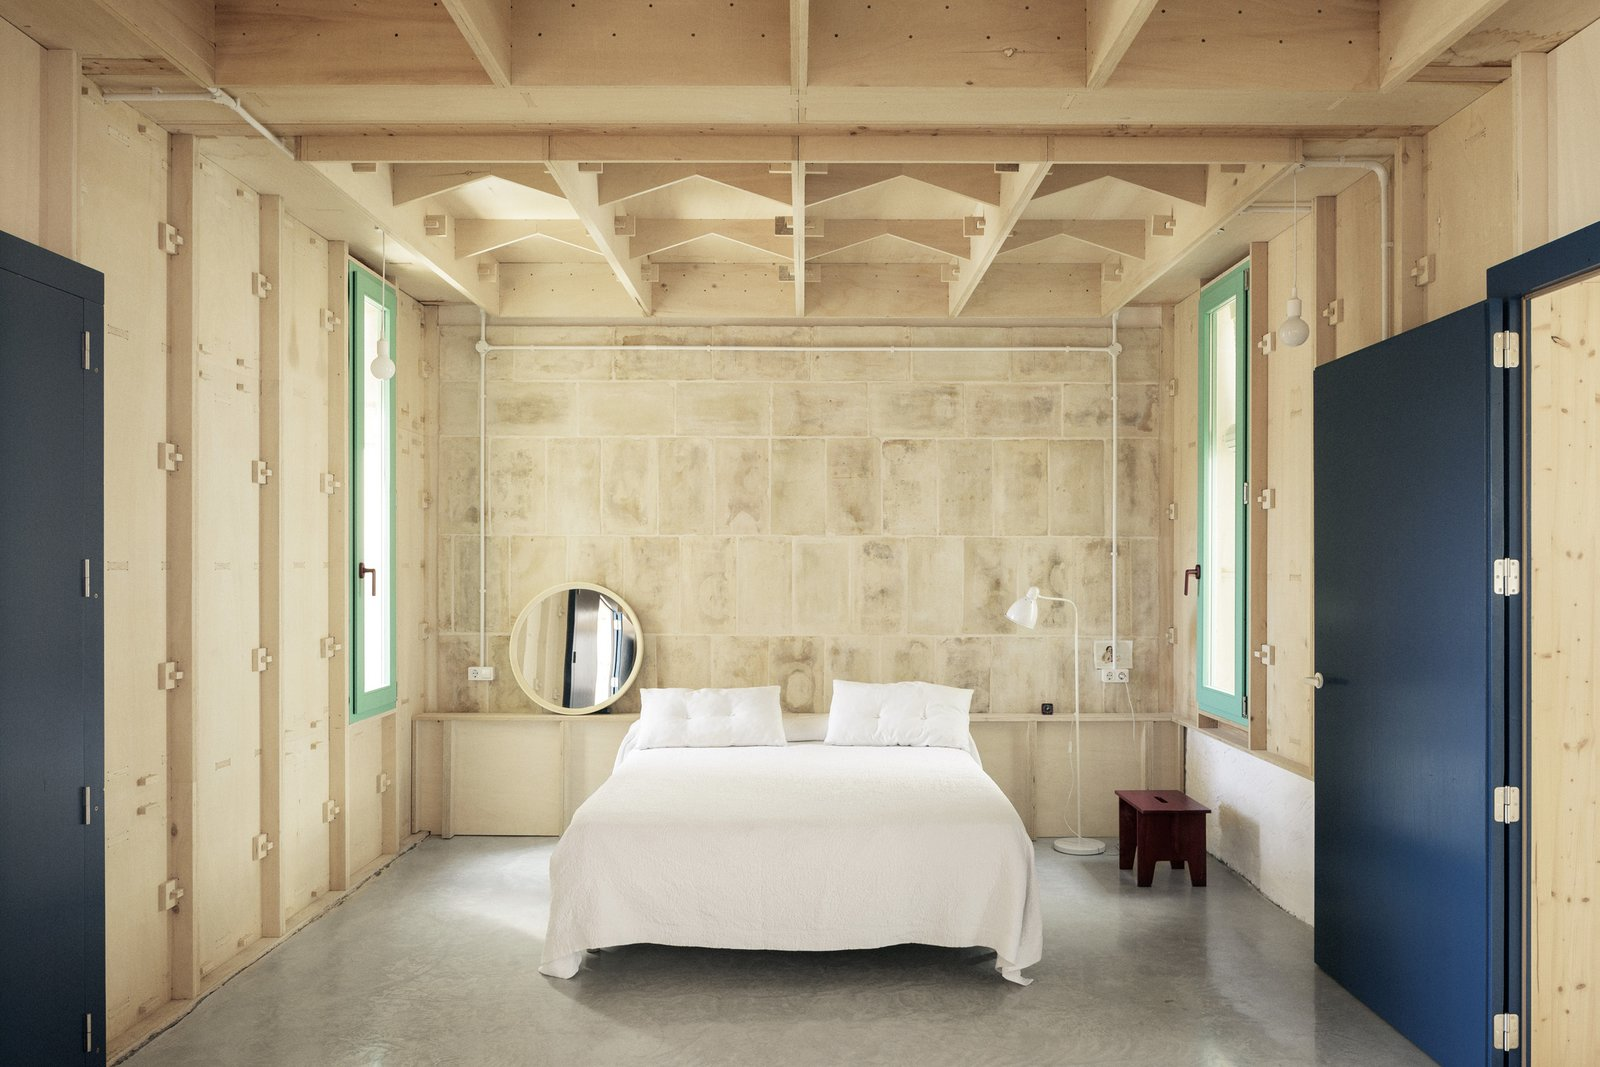 Bedroom, Bed, Concrete, Floor, Shelves, Night Stands, Lamps, and Pendant The master bedroom.  Best Bedroom Shelves Pendant Concrete Photos from A Luminous Plywood Addition Crowns This Mallorca Townhouse